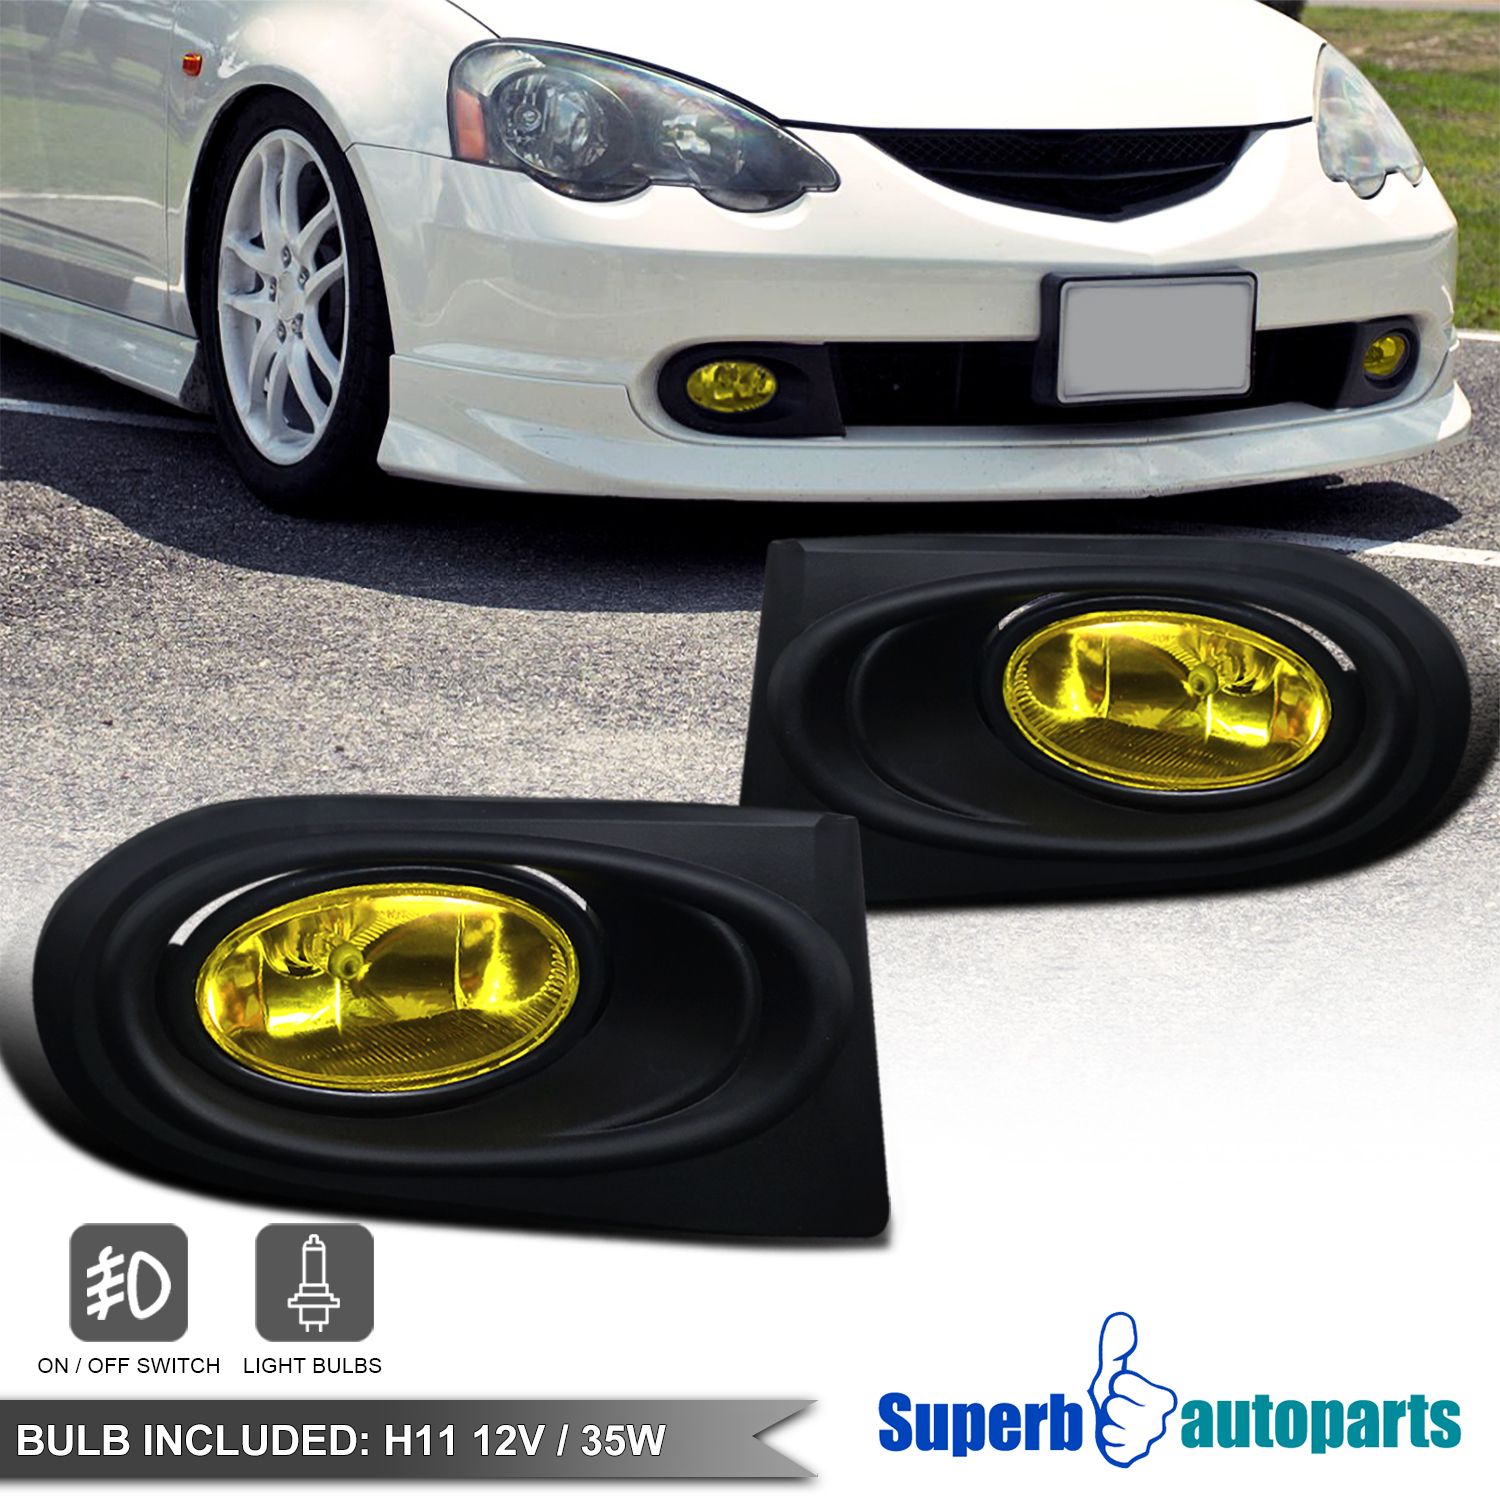 2002 Acura Rsx Repair Prices: 2002-2004 Acura RSX DC5 Type-S Driving Fog Lights W/Switch